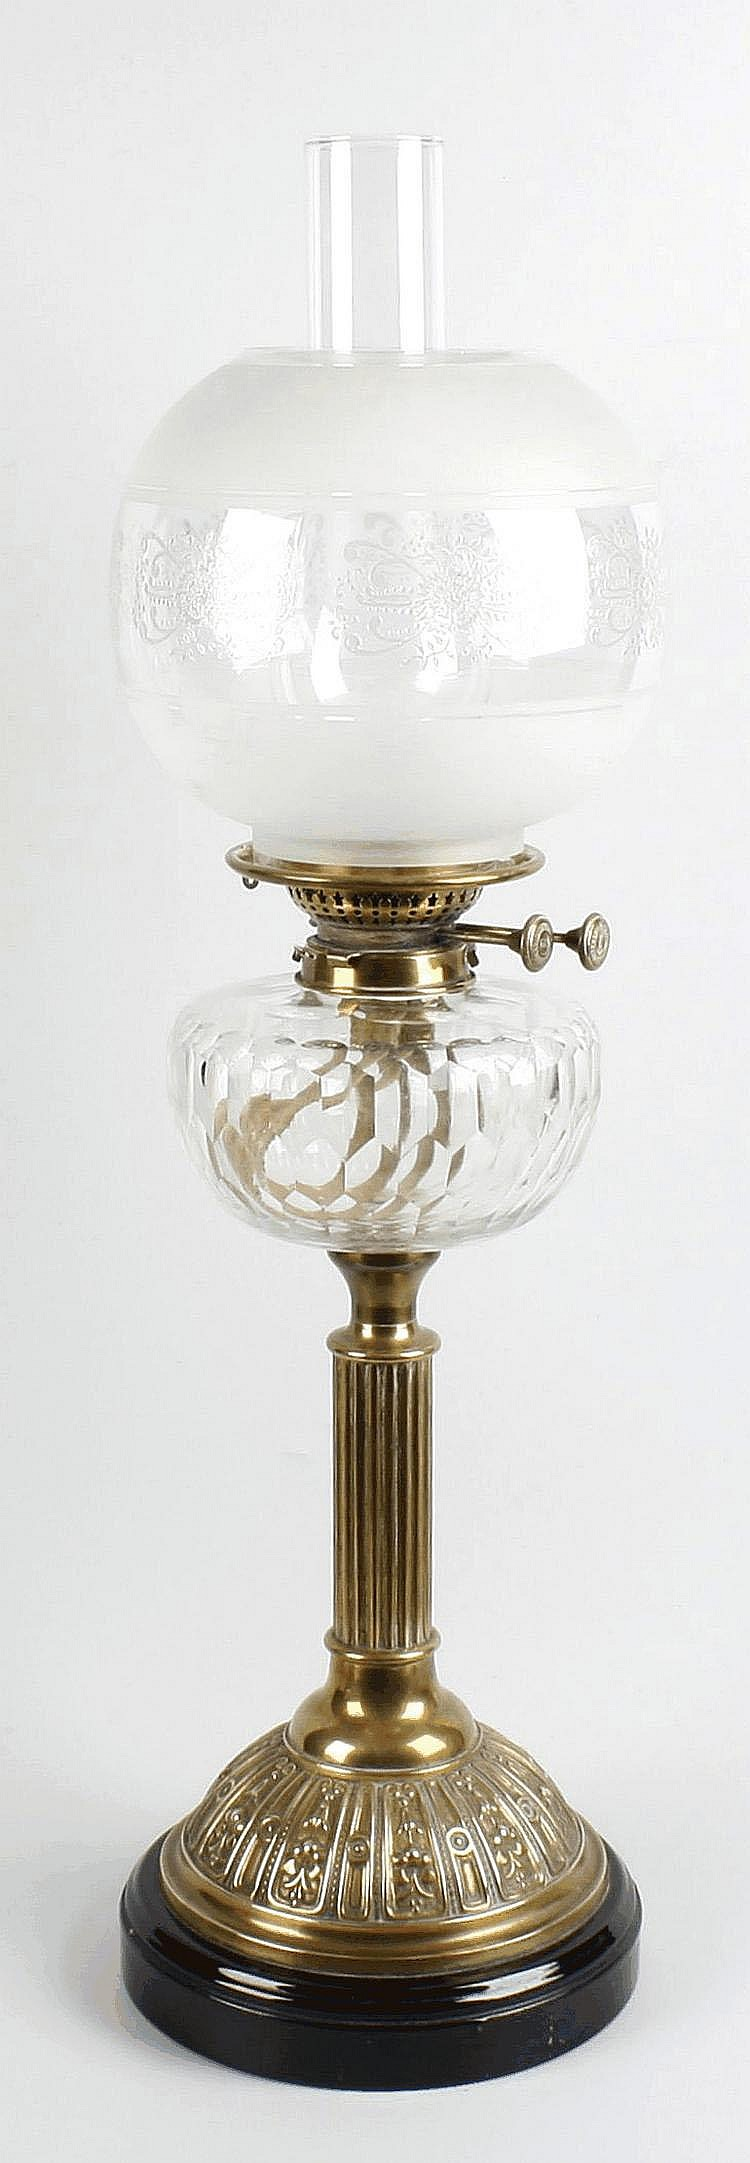 19th century oil lamp with glass reservoir lamp shade and chimney.